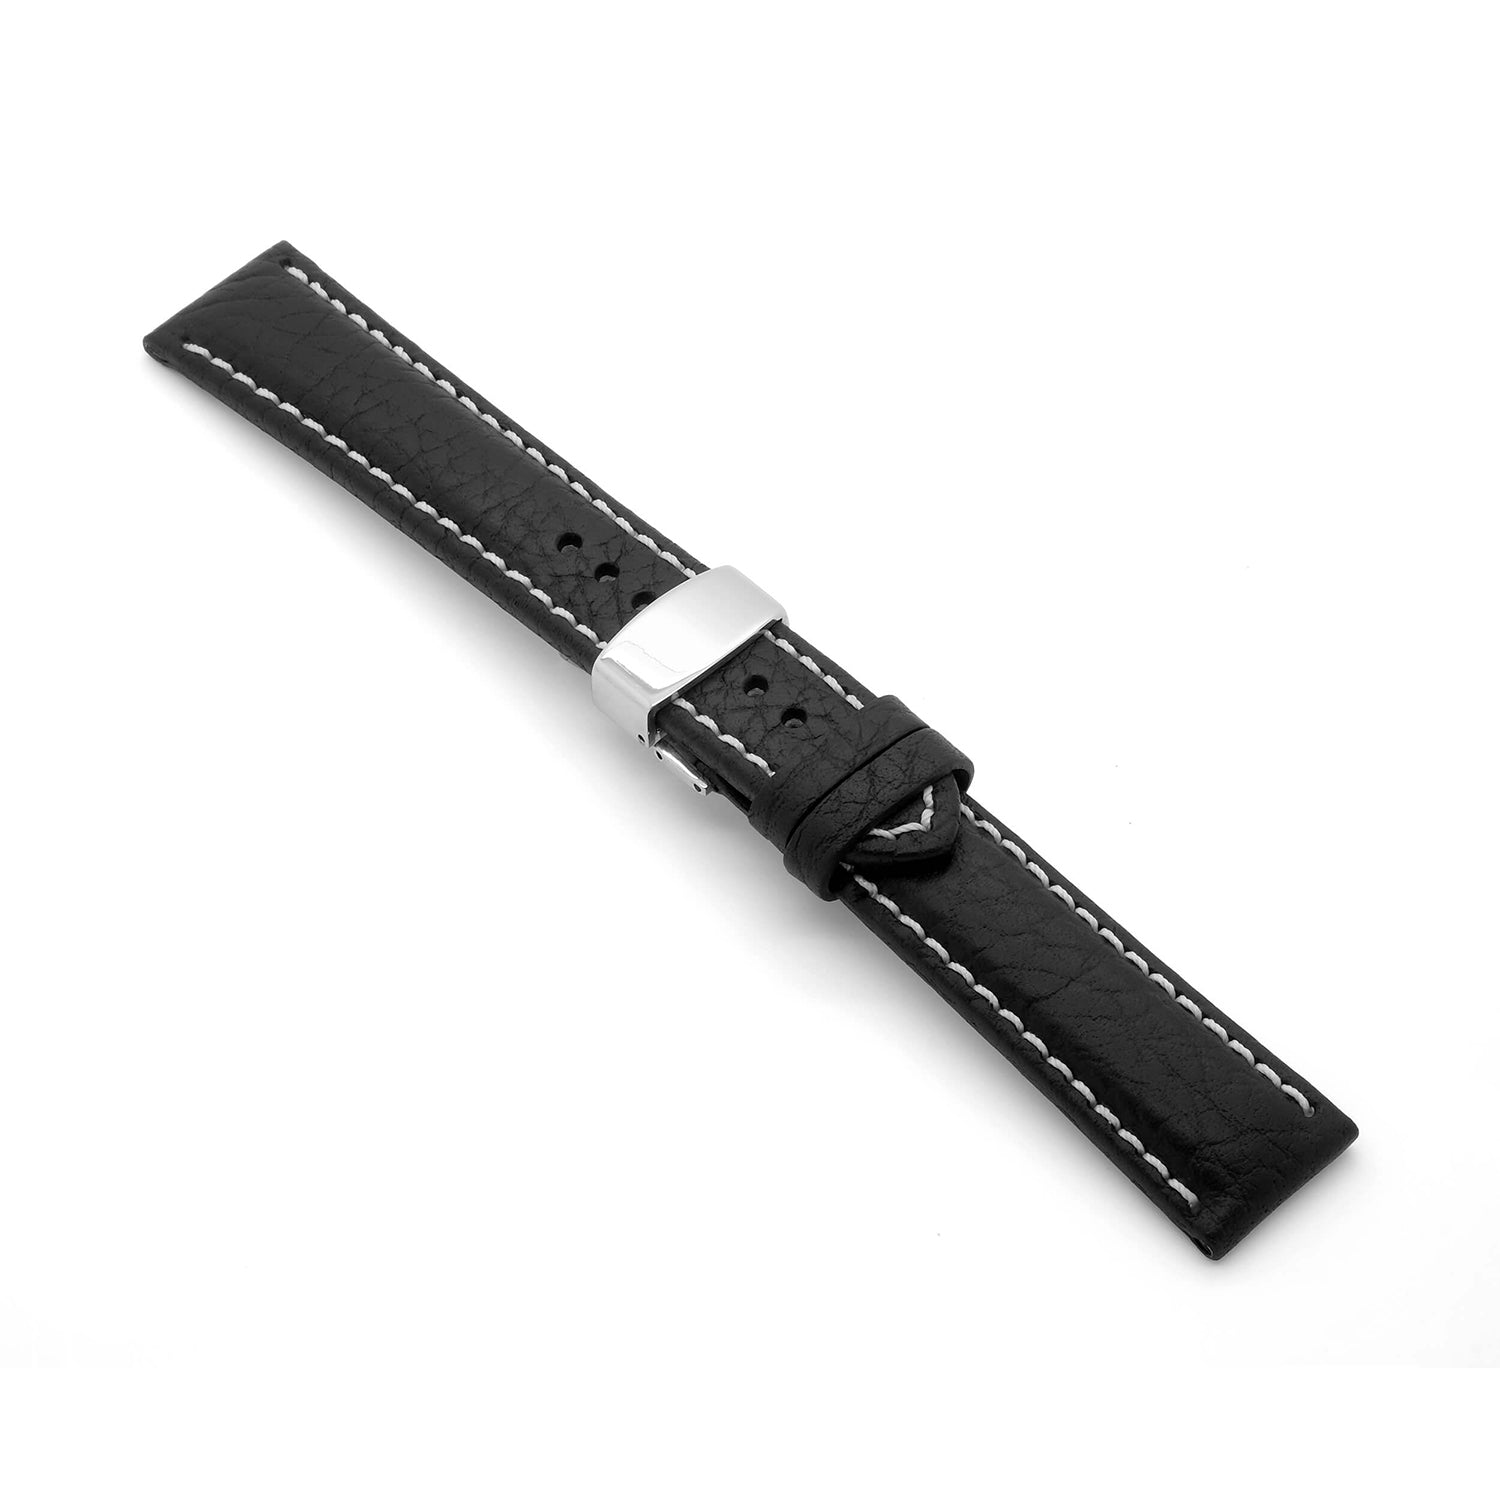 'Brooklands-DC' Leather Watch Strap With Deployment Clasp (Black)